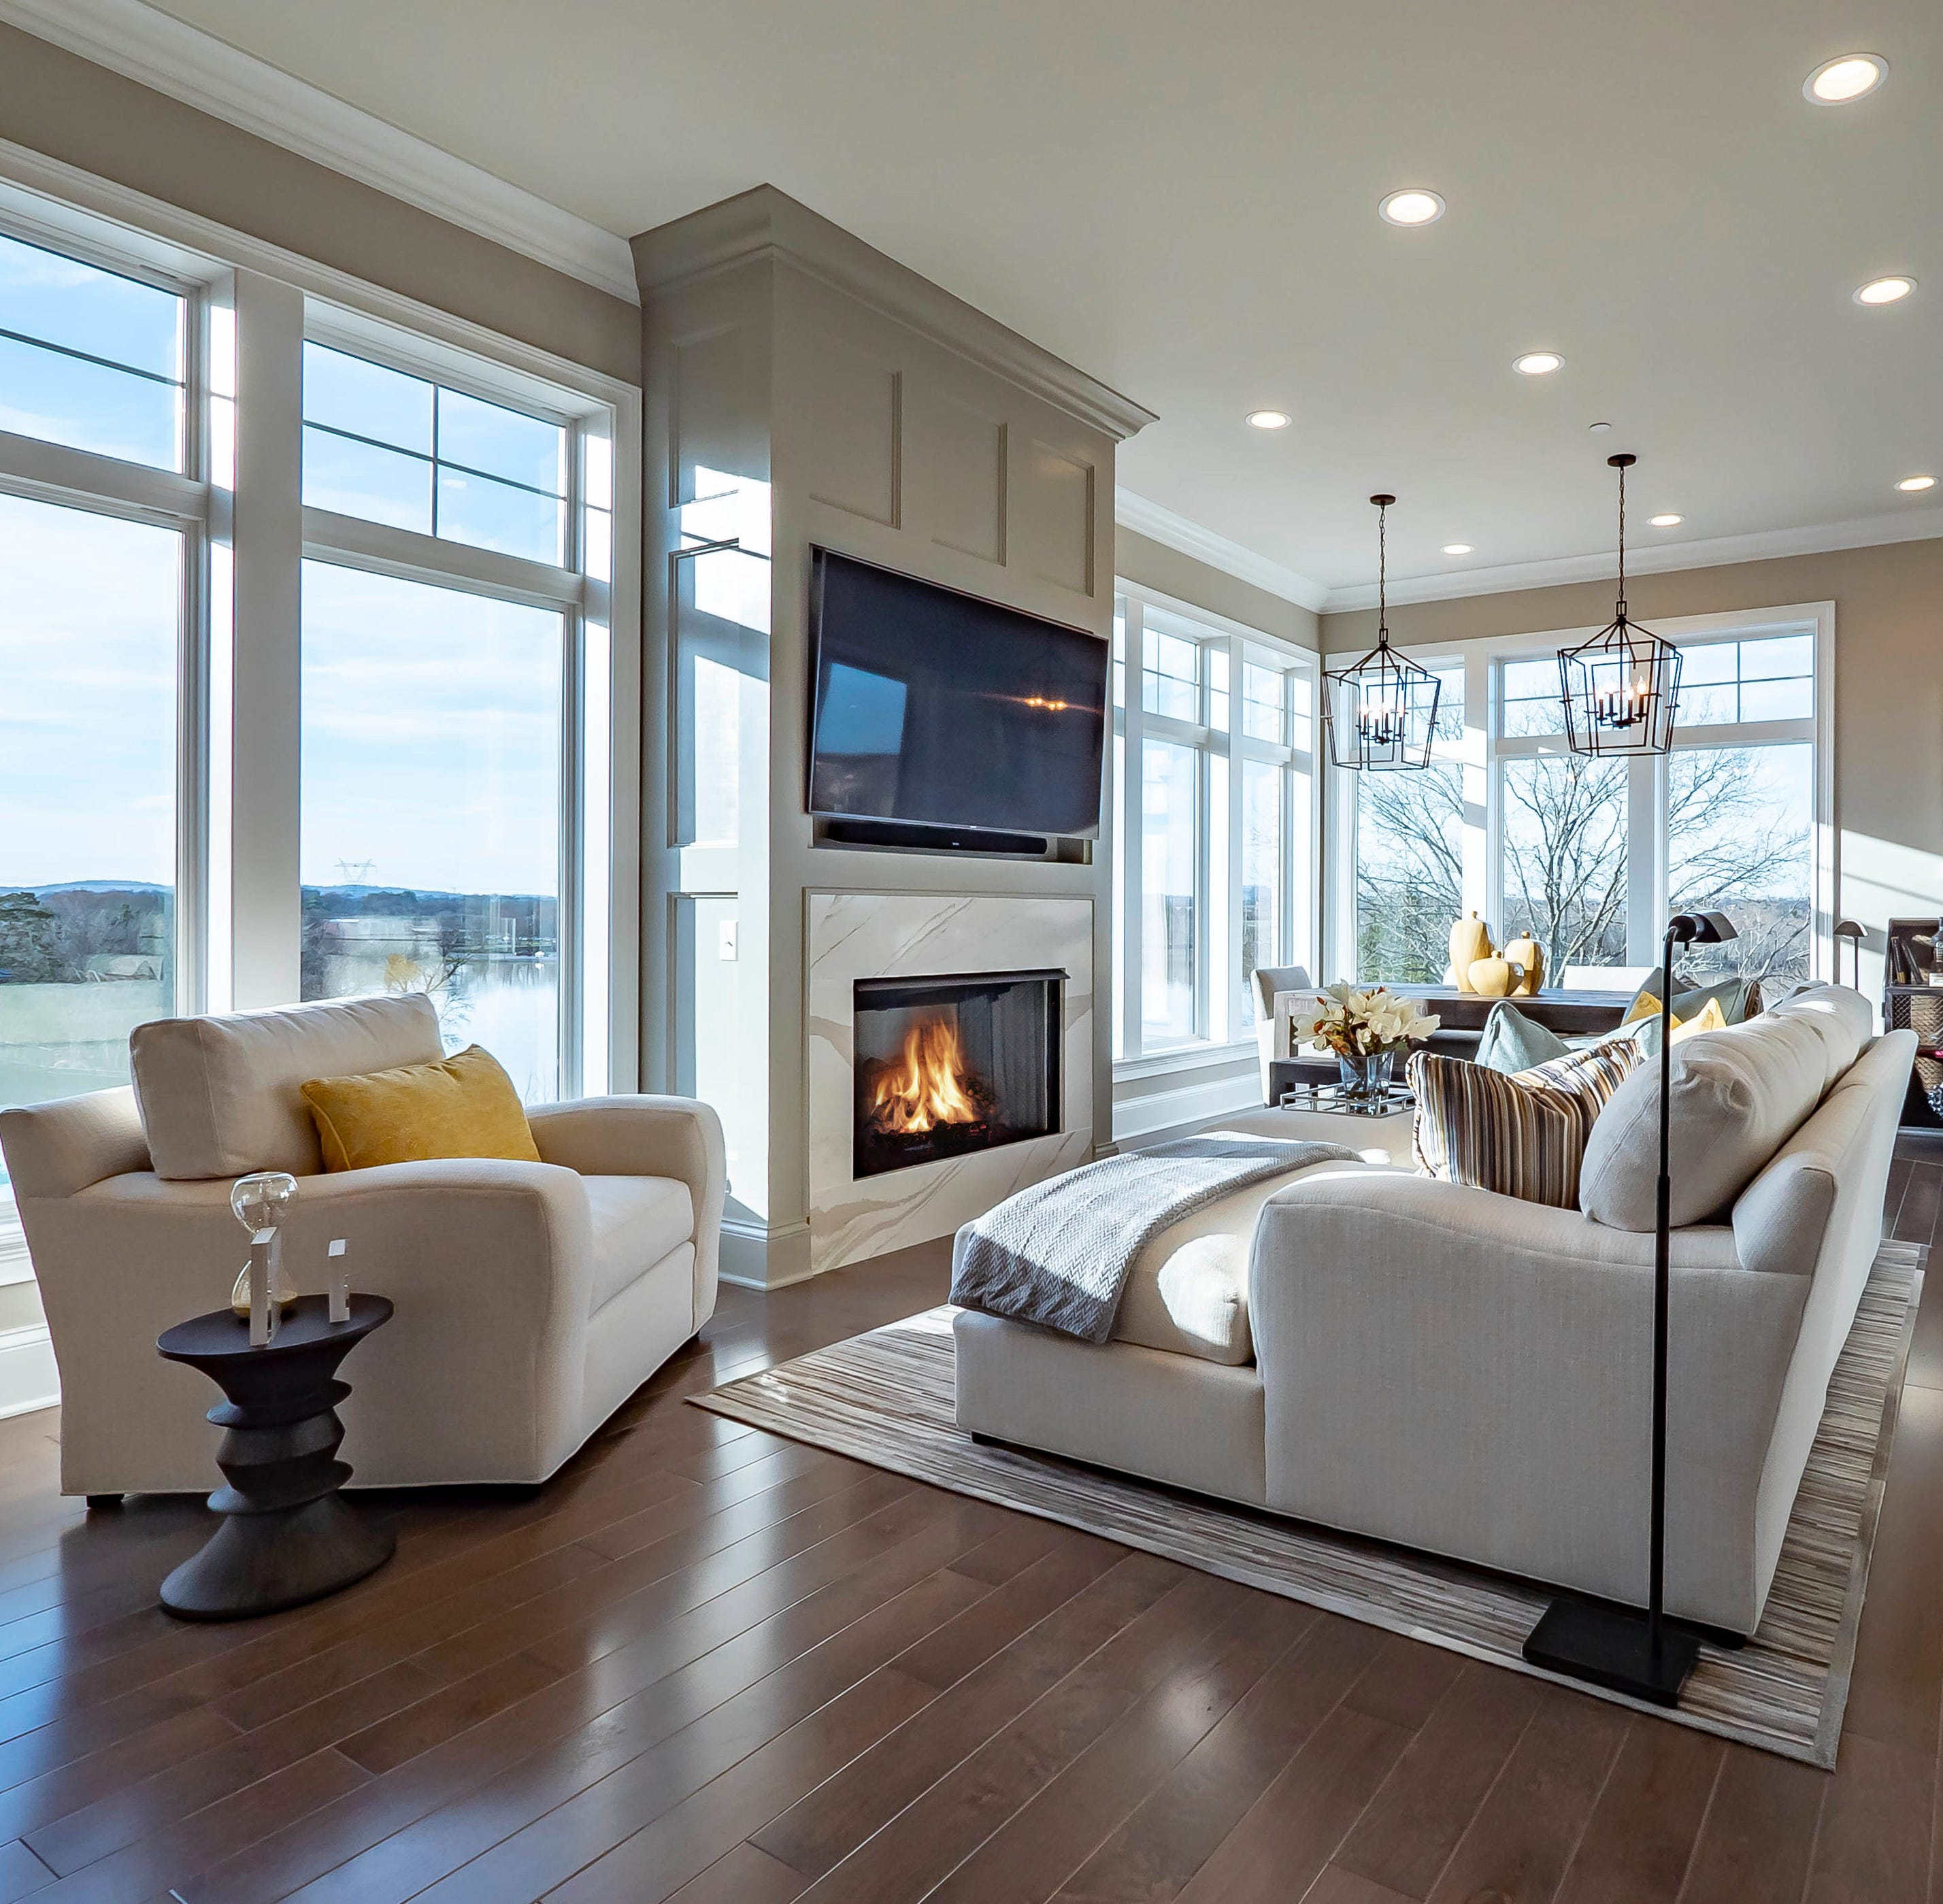 New owners say 'view is spectacular' at Revery Point luxury condos on Old Hickory Lake